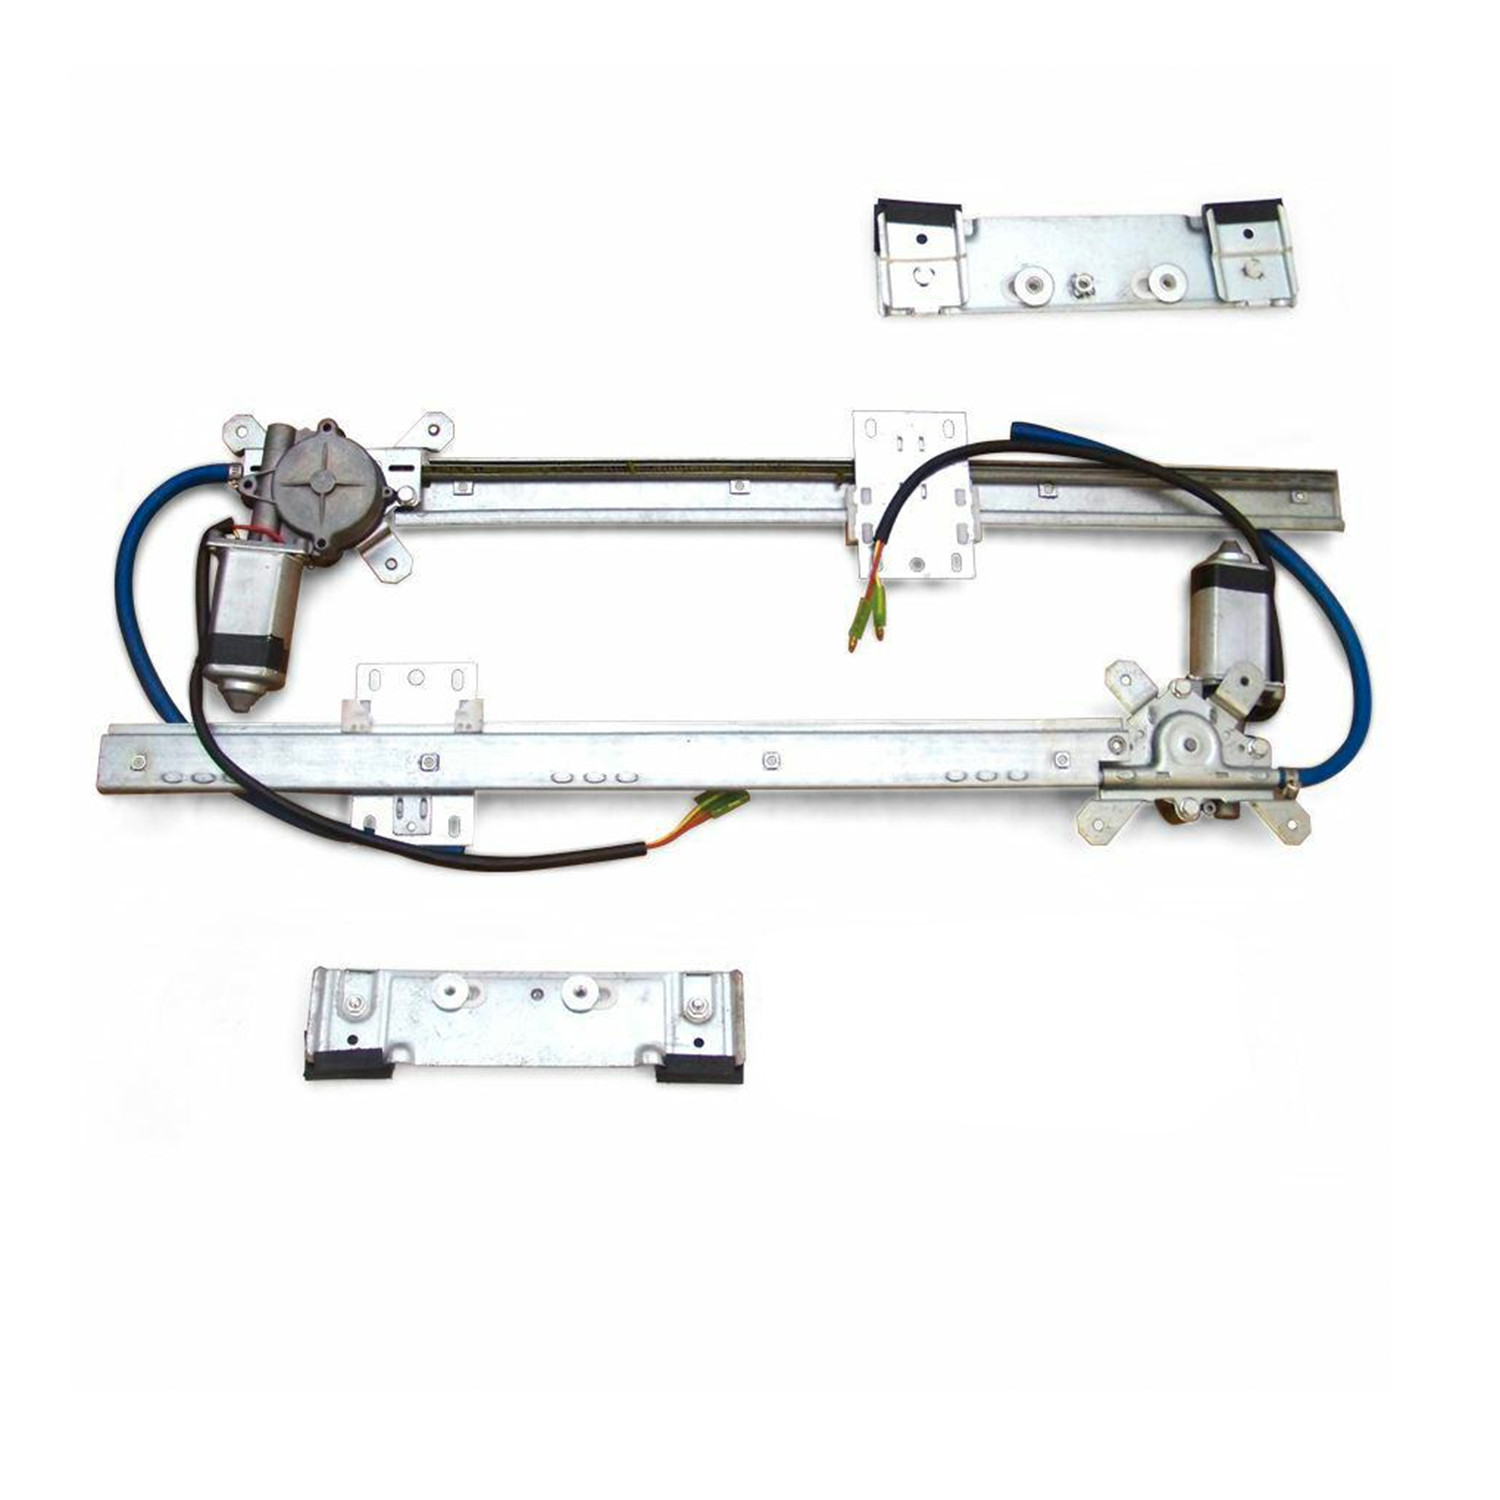 Ls Fig Fig 7 Previa Chassis Schematics